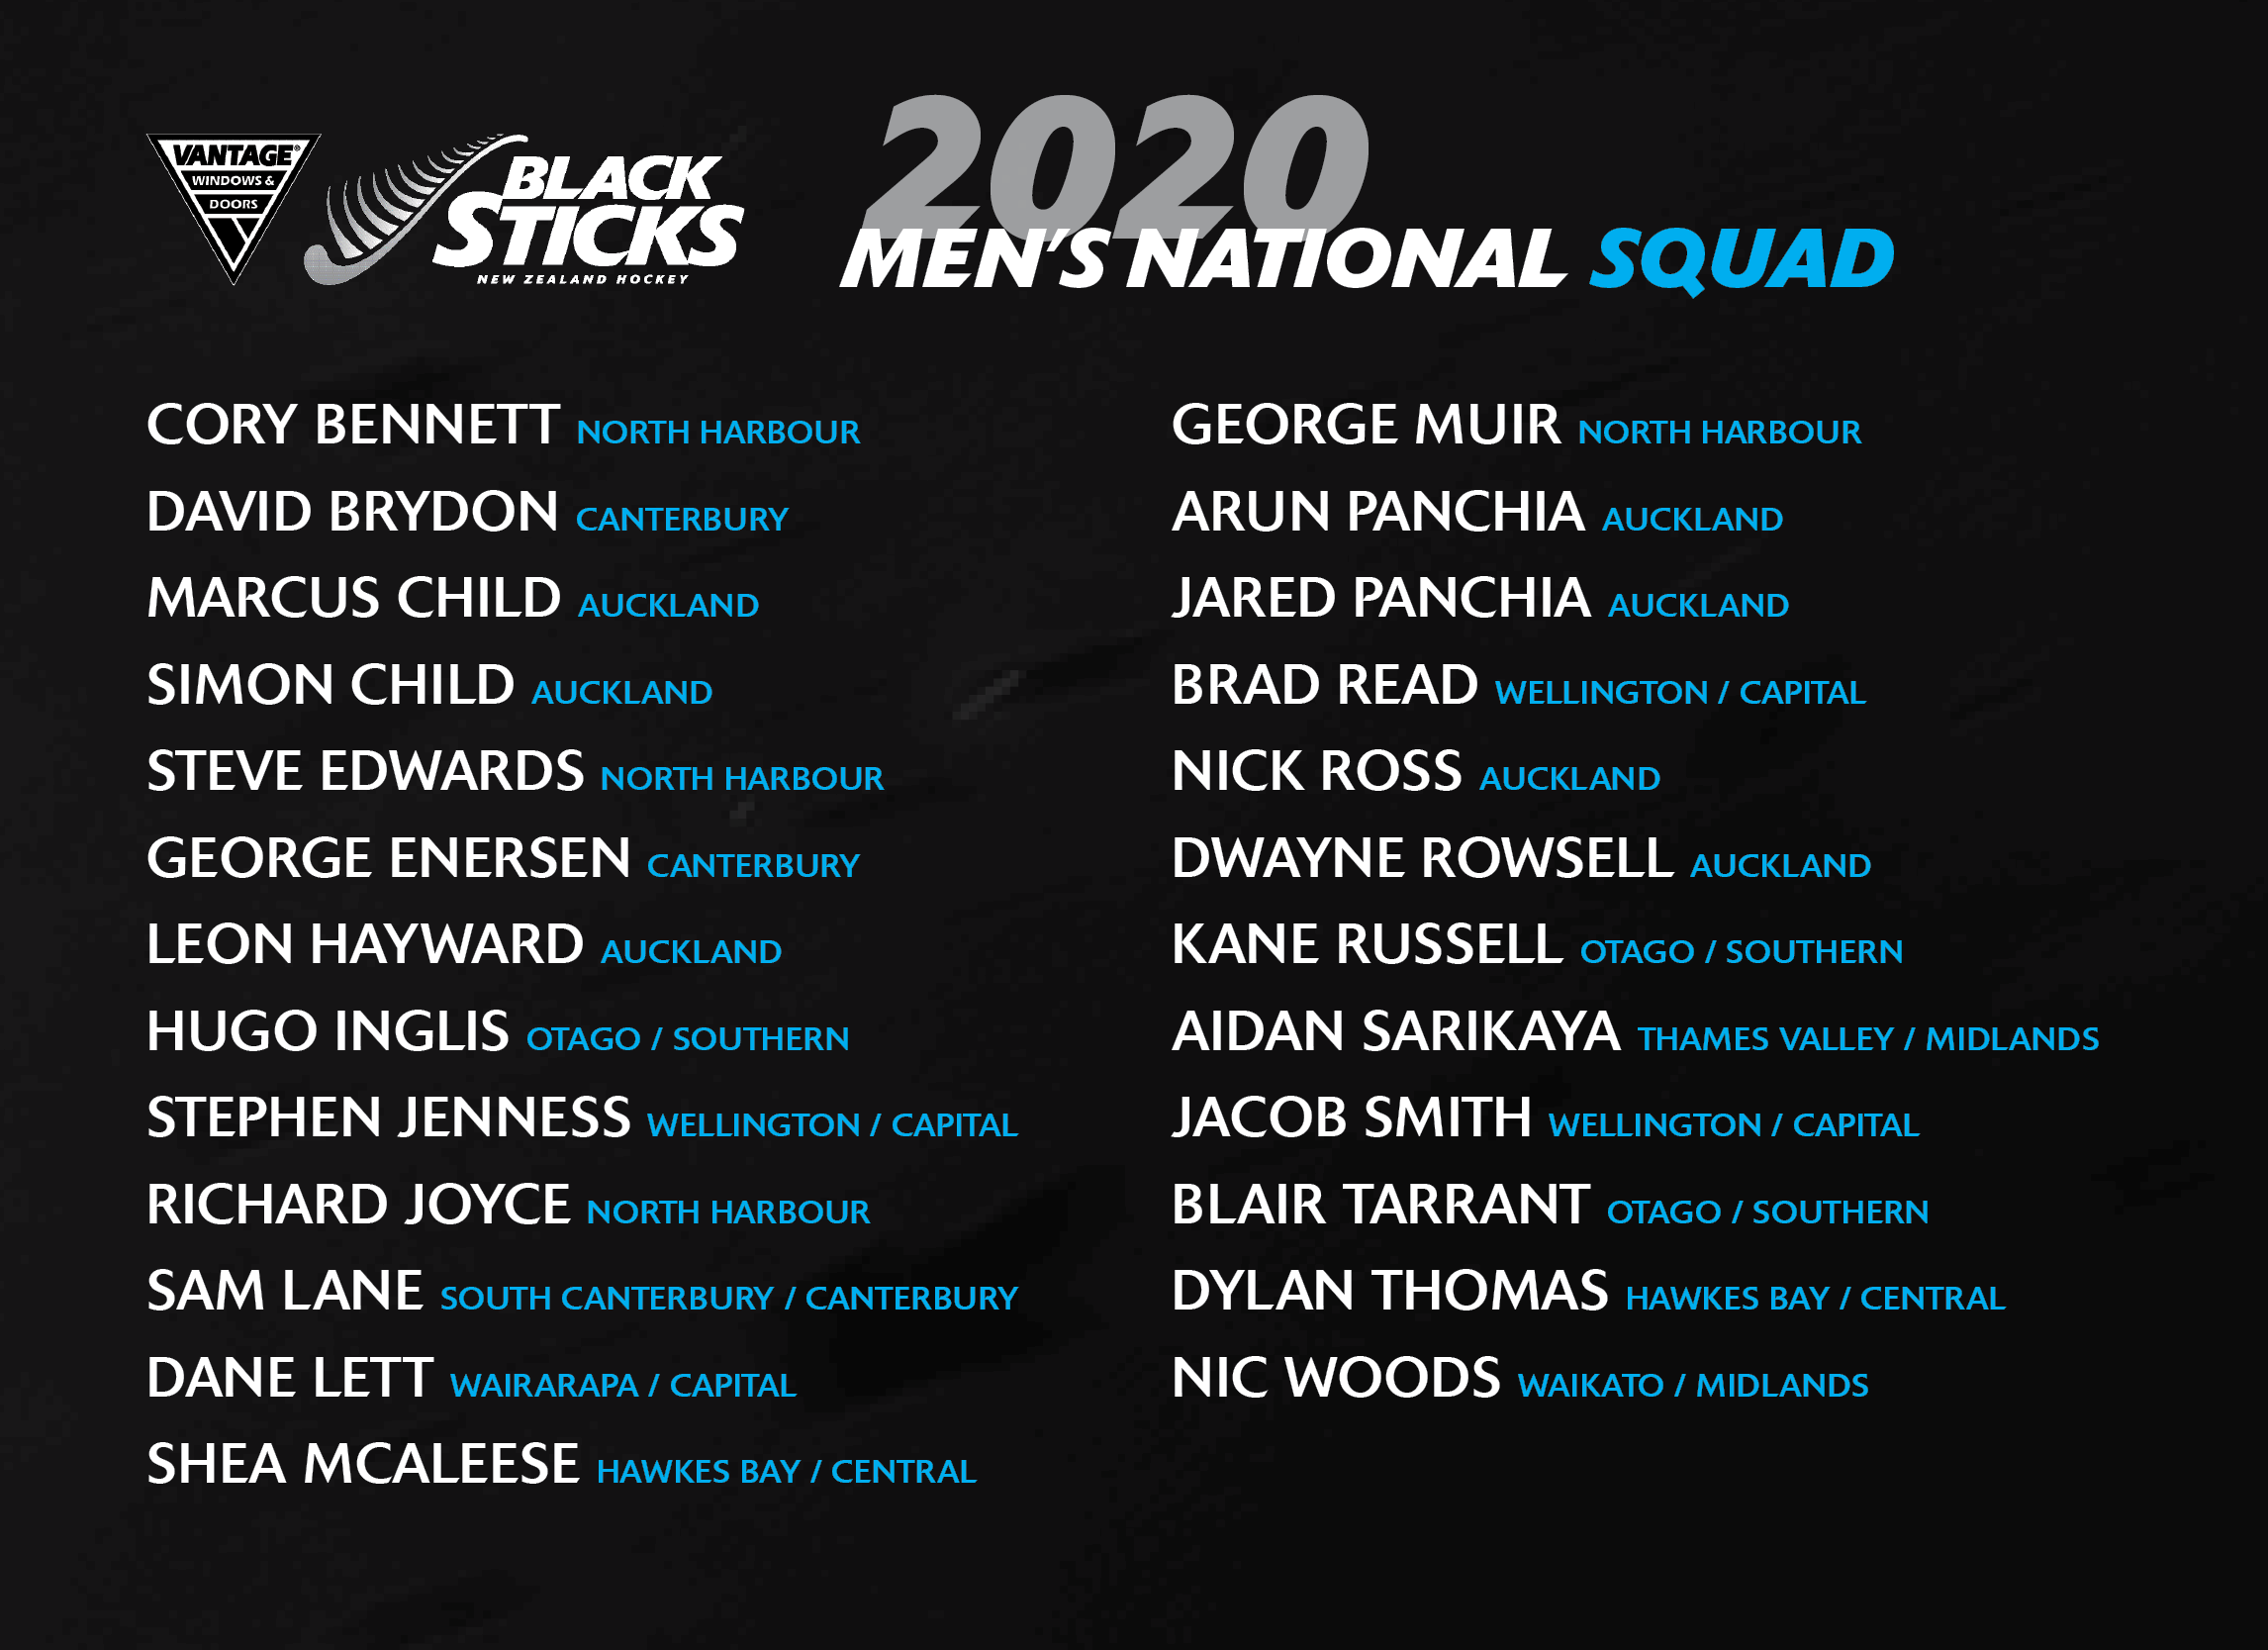 Exciting 2020 Men's National Squad Announced